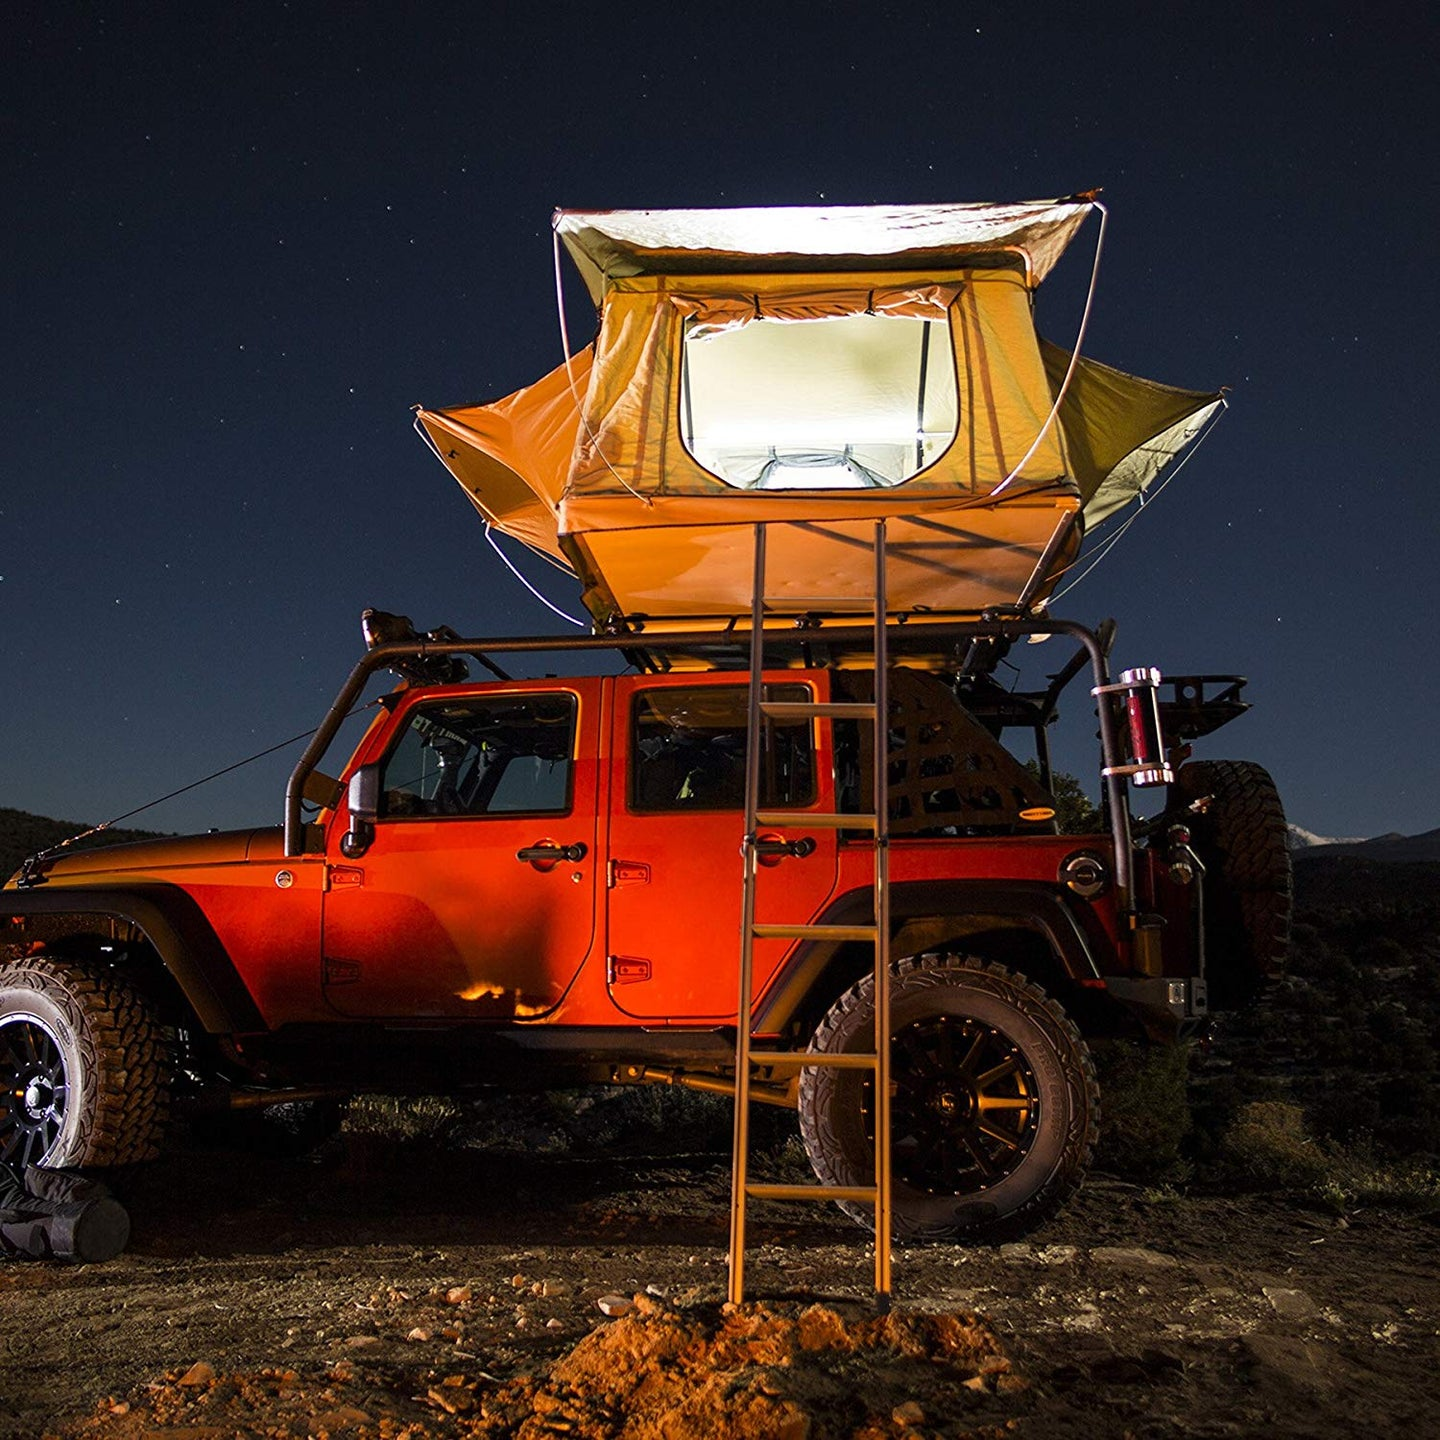 A jeep with a camping tent.